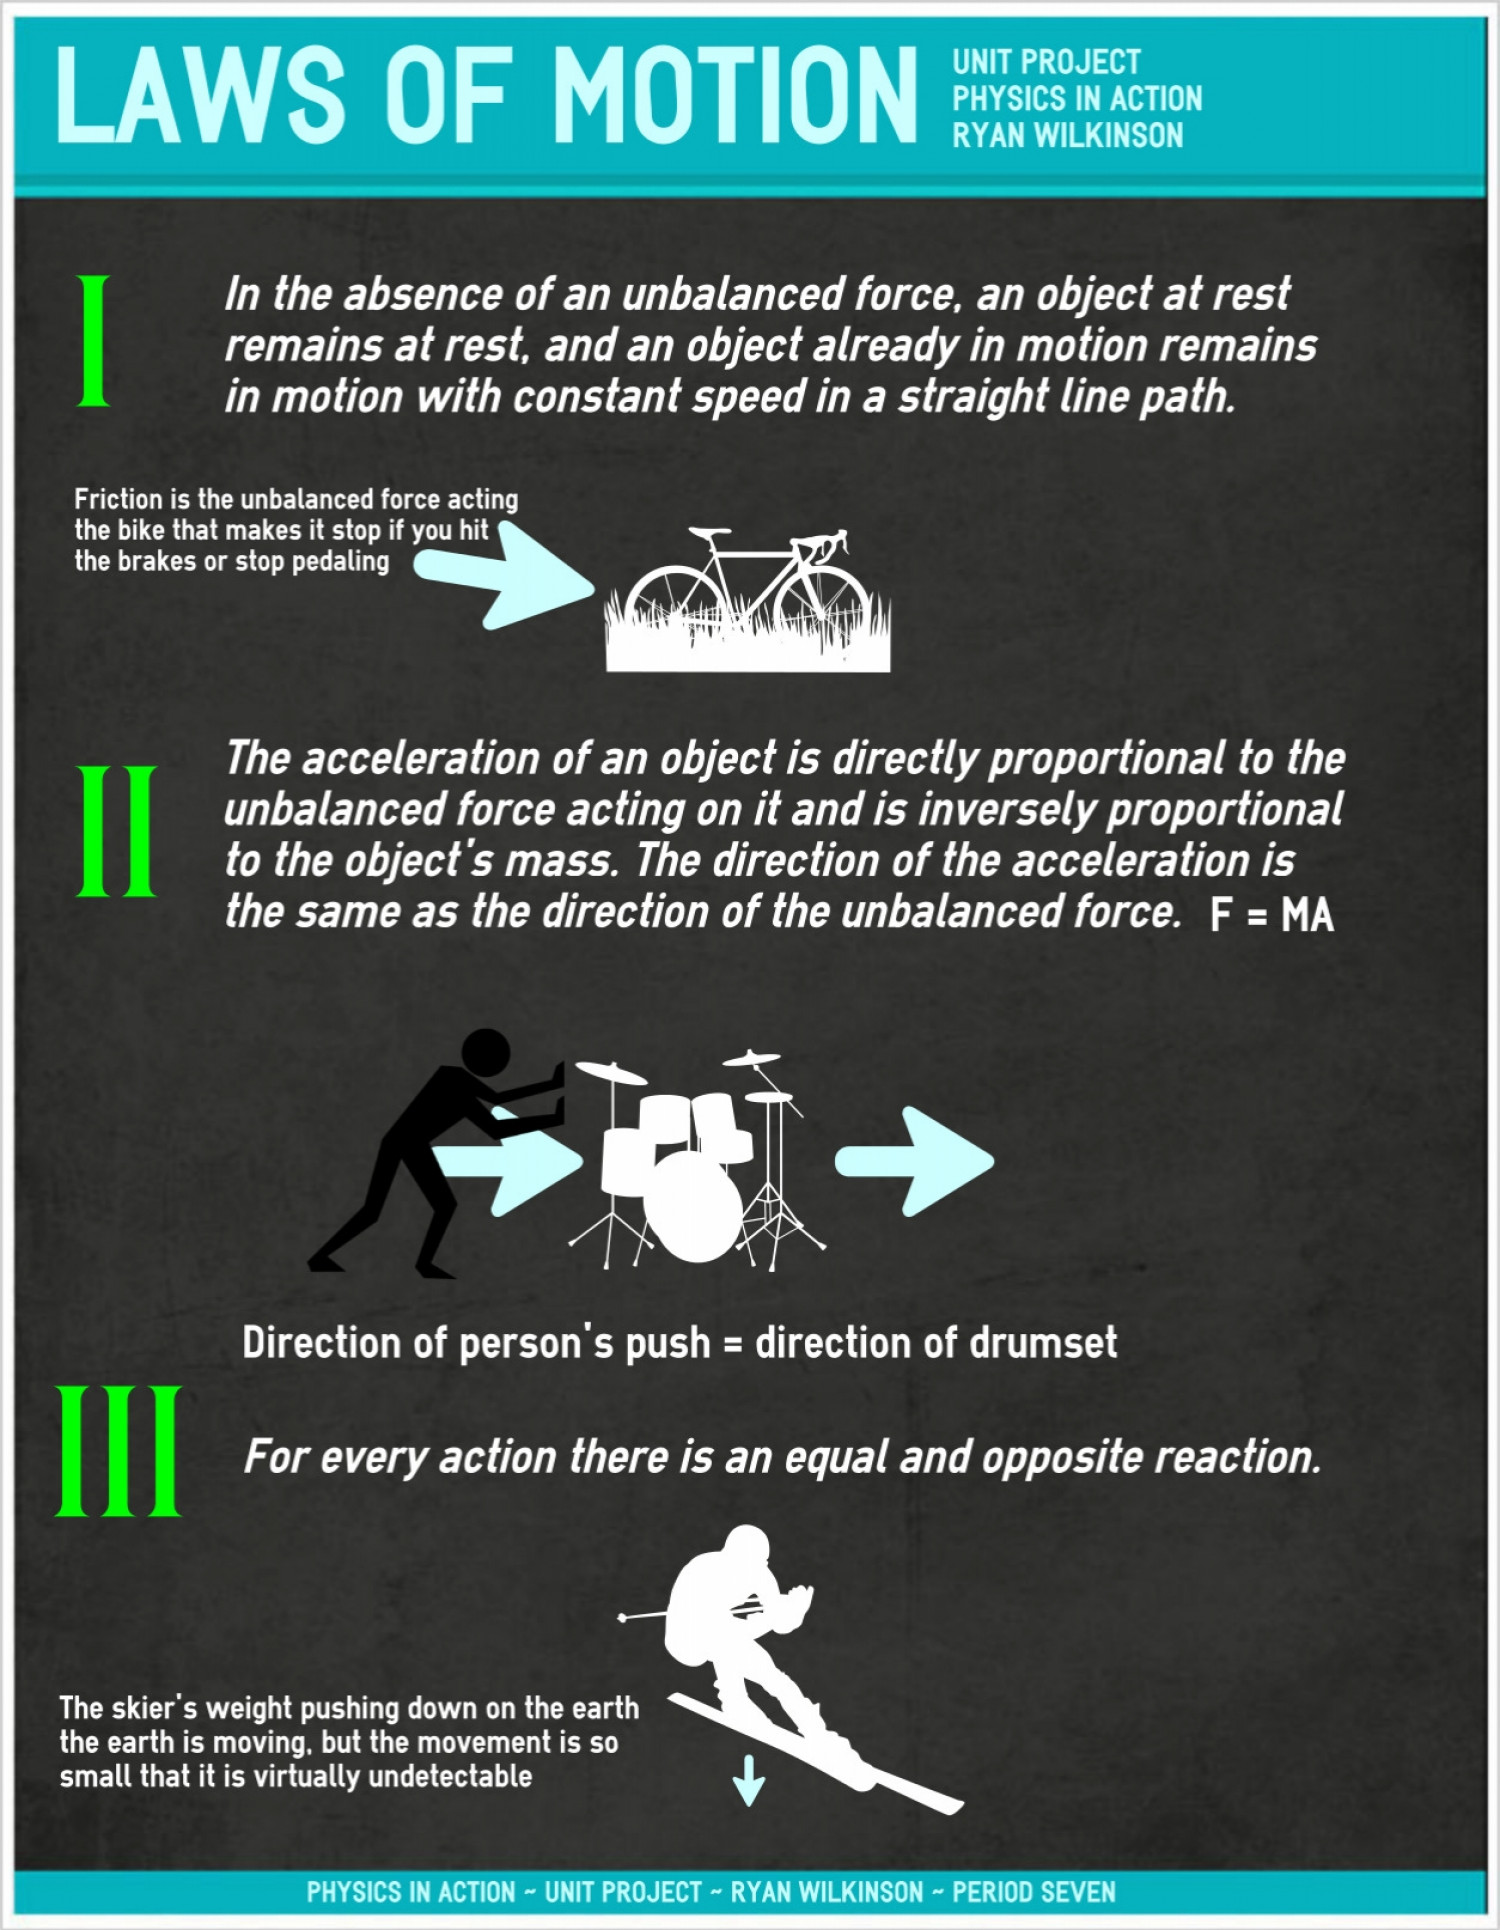 Laws of Motion Infographic